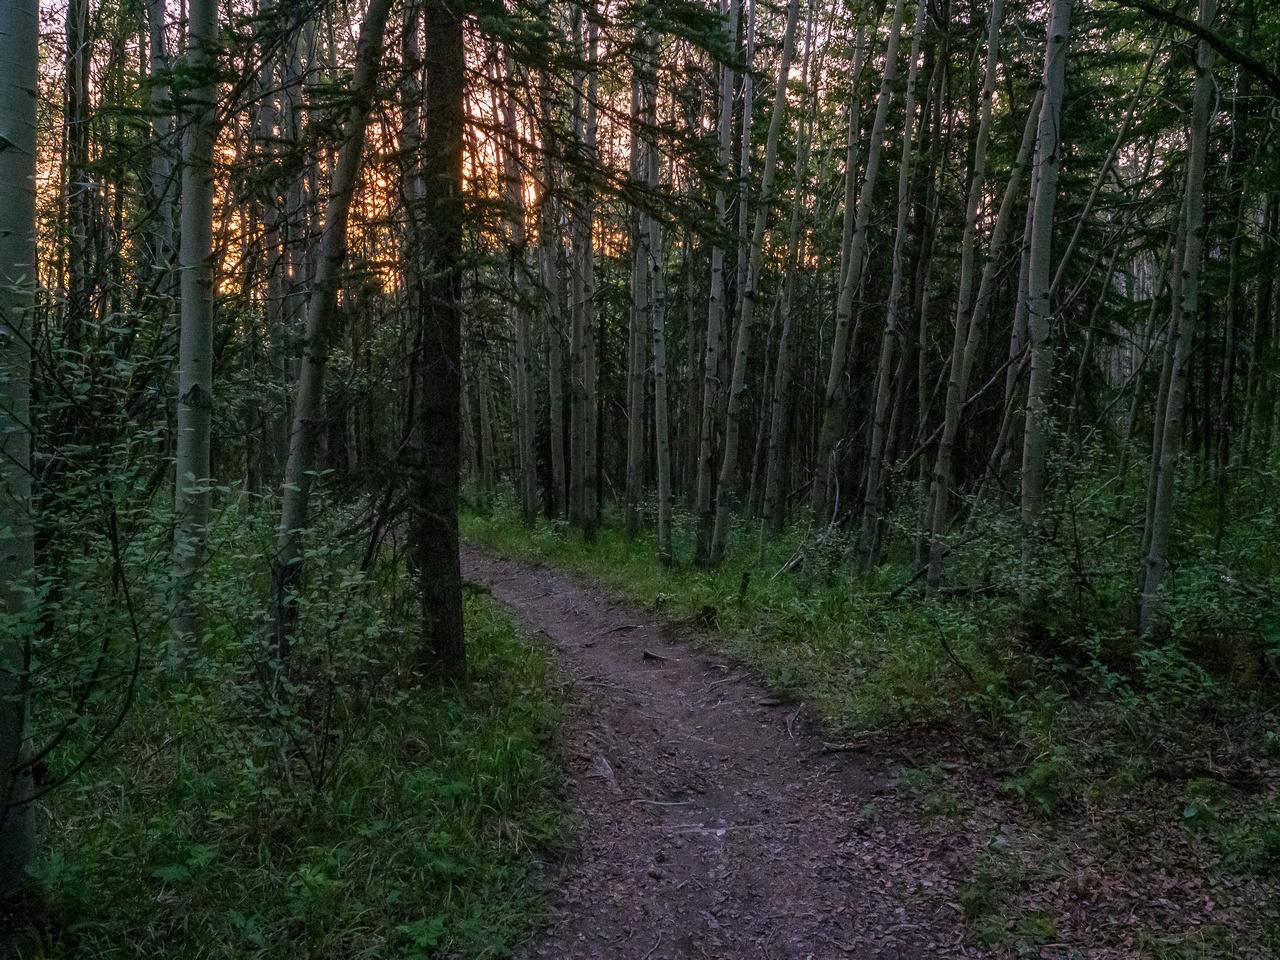 A lovely 05:00 morning hike in the forest along the Cline River Trail.